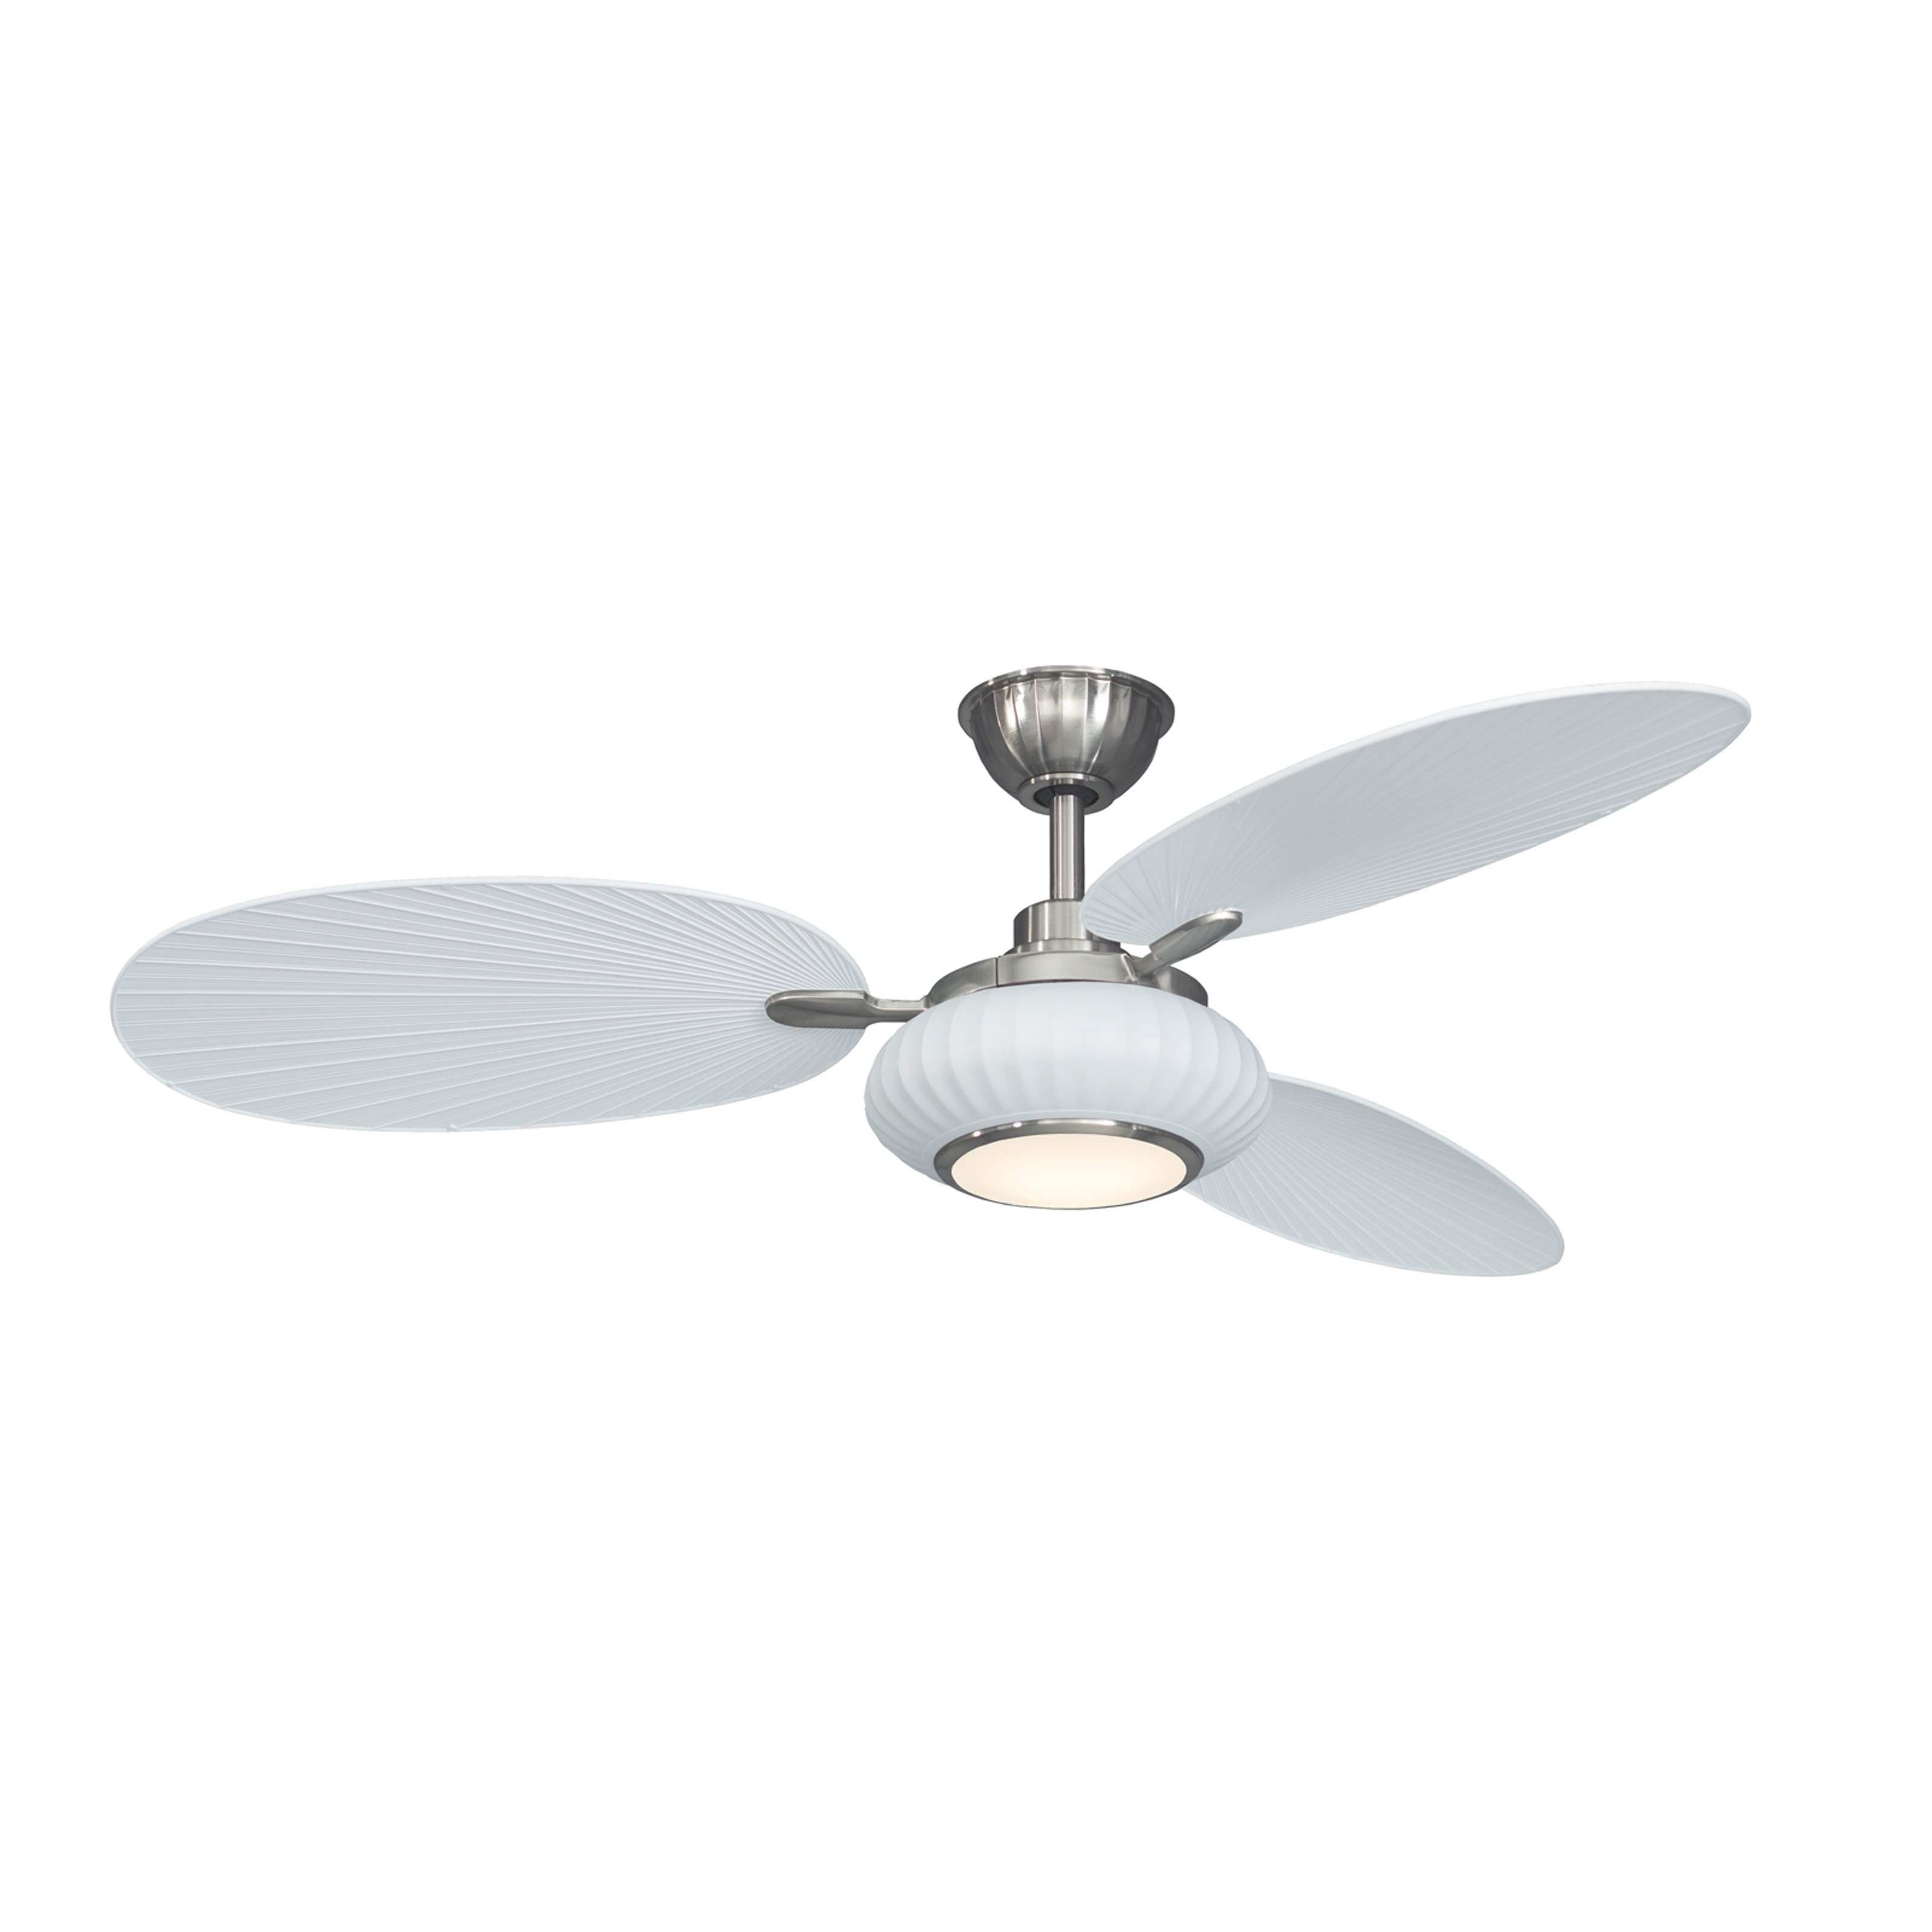 Well Known 24 Inch Ceiling Fan With Light Awesome Kichler Renew Patio 52 In Regarding 24 Inch Outdoor Ceiling Fans With Light (Gallery 19 of 20)